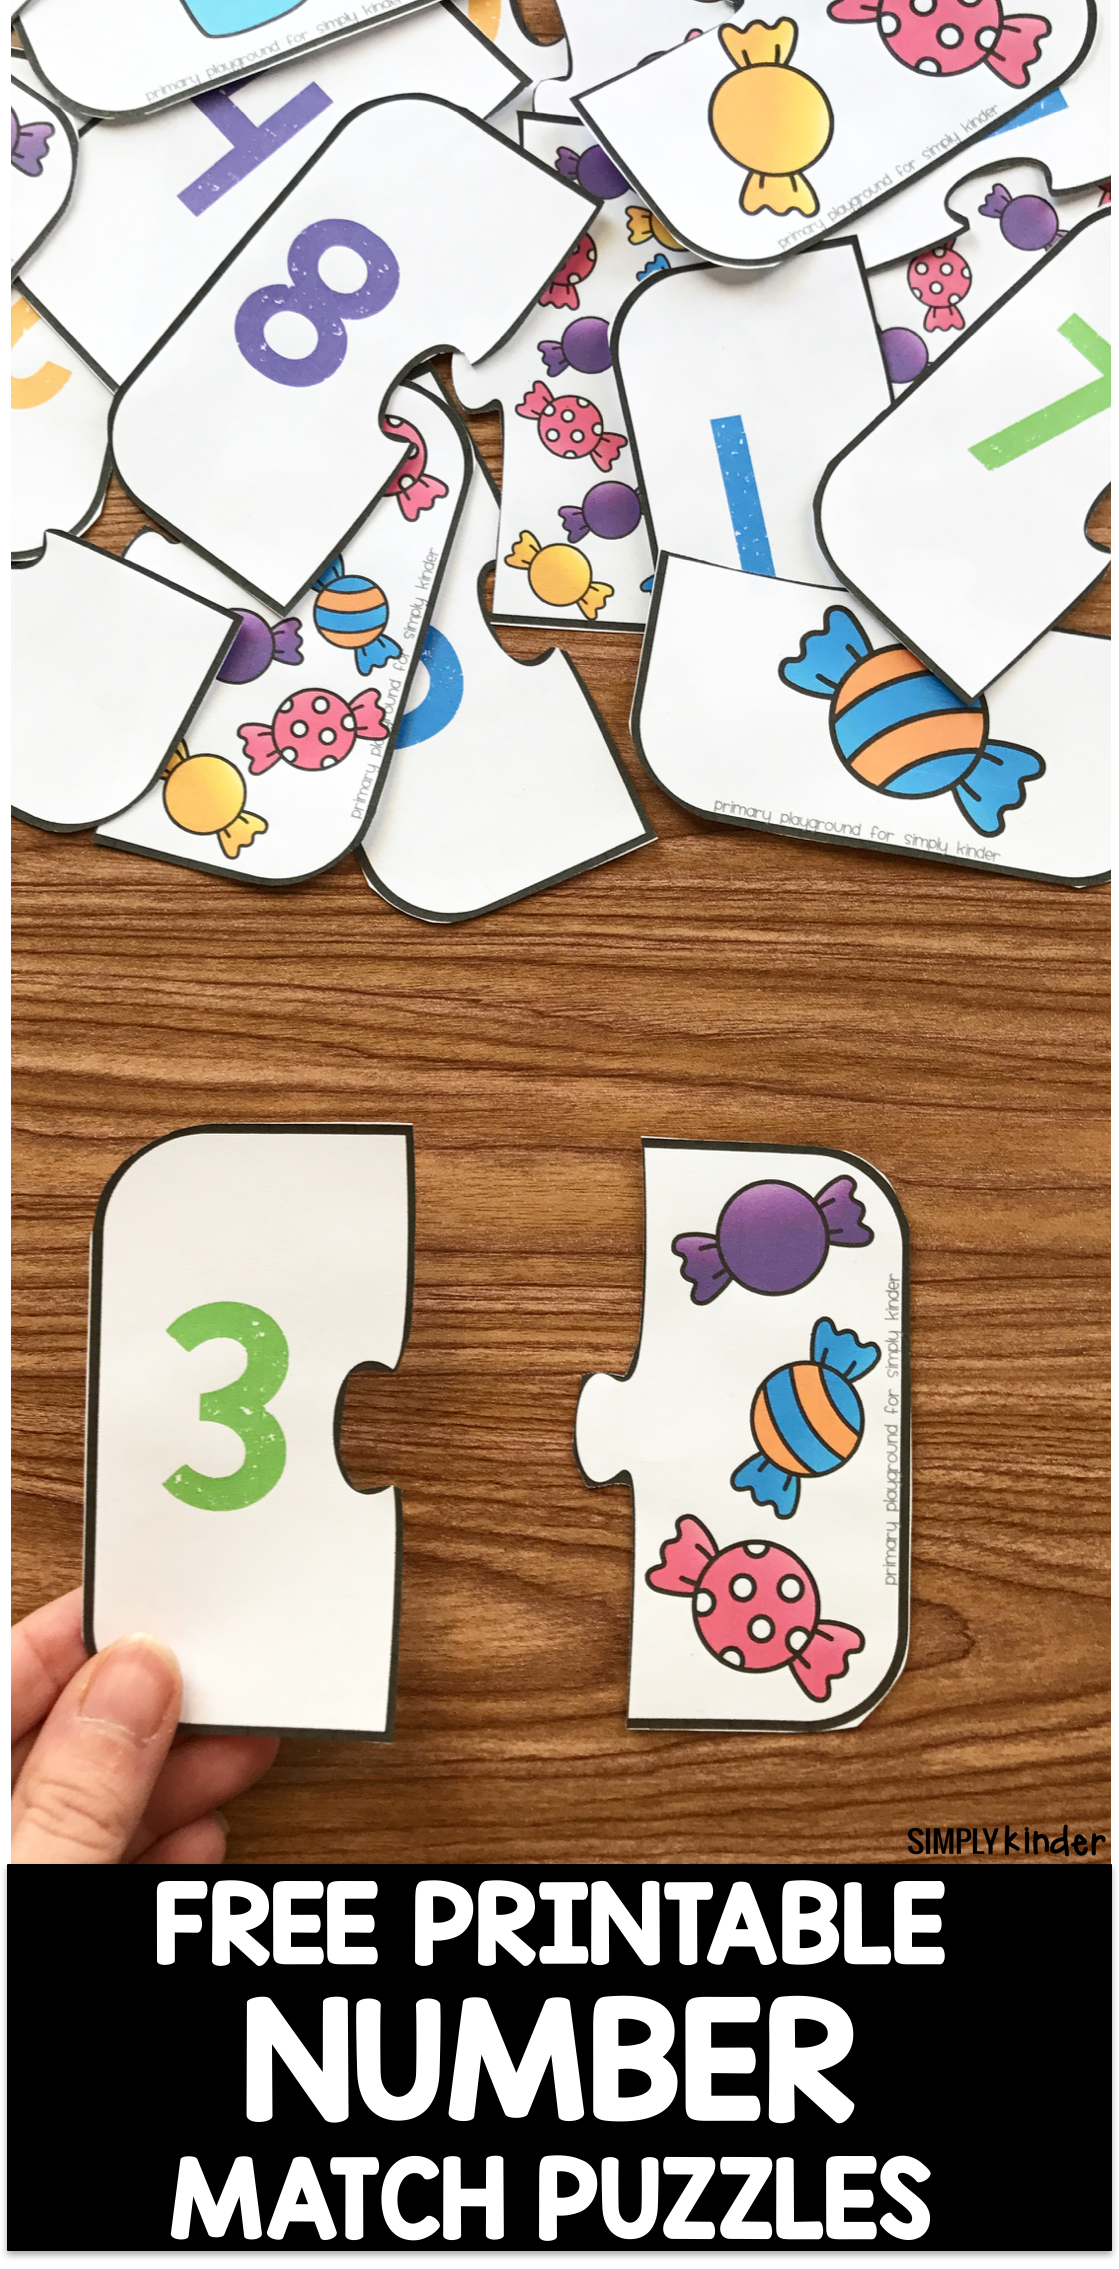 Free Printable Number Match Puzzles Simply Kinder Free Printable Numbers Numbers Preschool Preschool Activities [ 2269 x 1119 Pixel ]